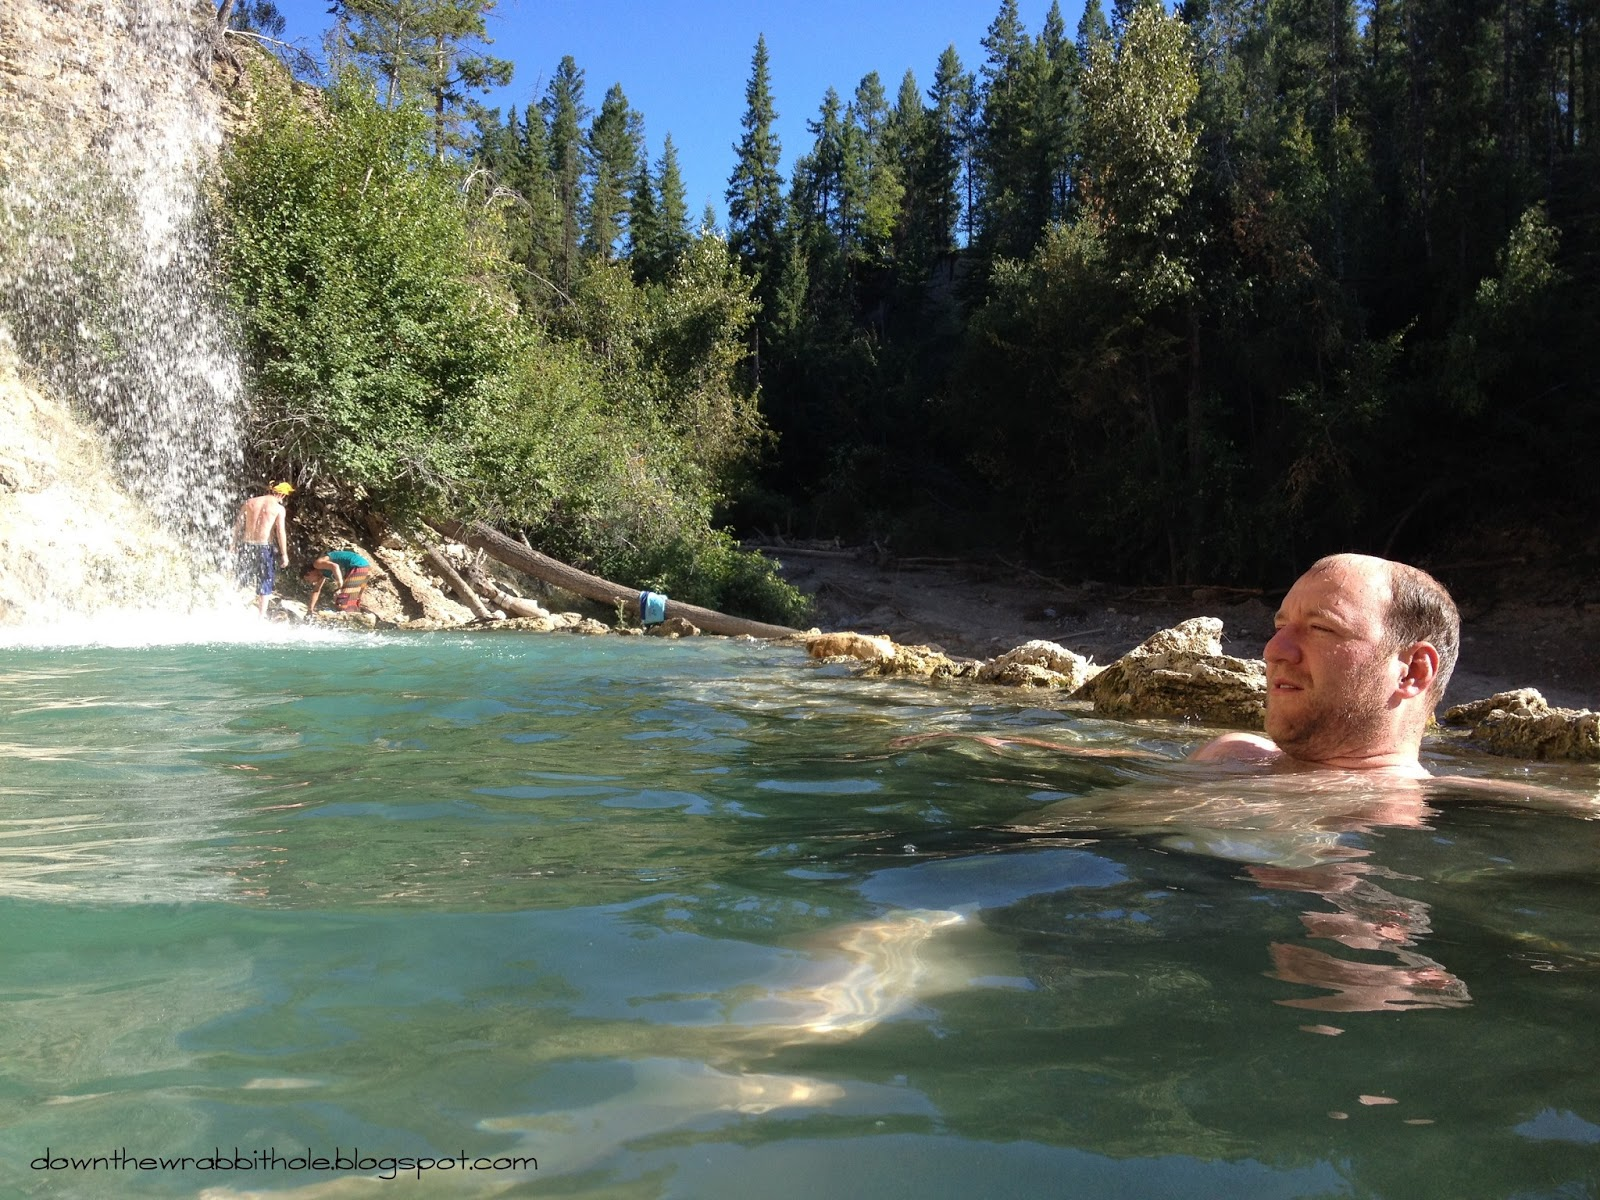 Glacier Hot Pools Upper South Island and the West Coast, Soak in a True Natural Hot Spring in the Canadian Rockies